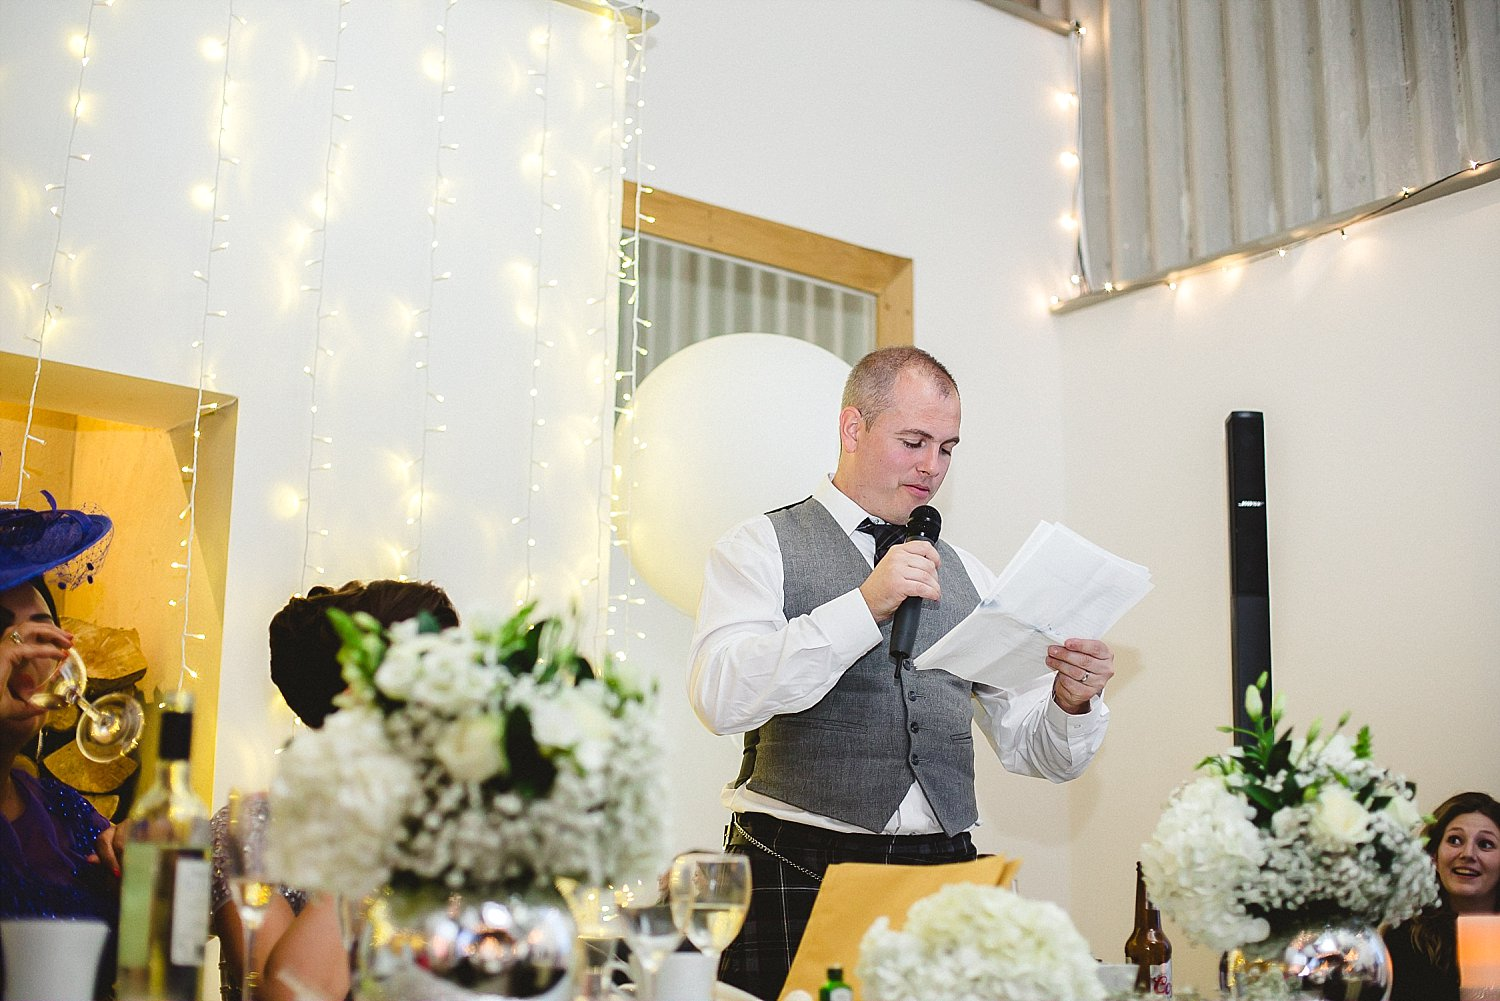 Houchins Essex Wedding - Best Man Speech